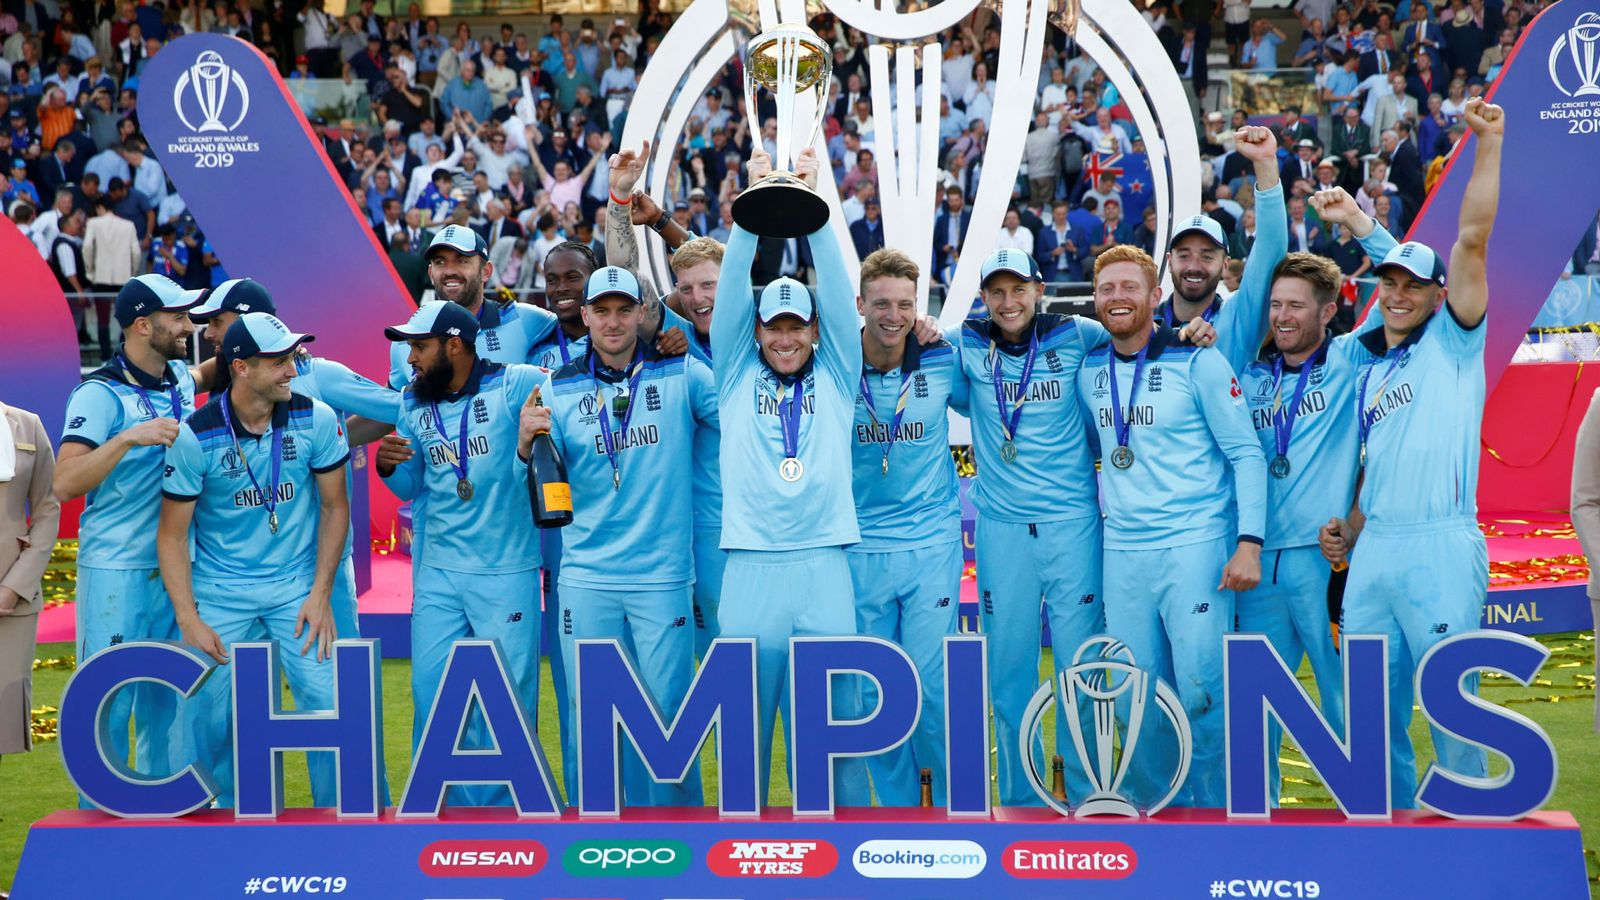 skynews-england-cricket-world-cup_4718477